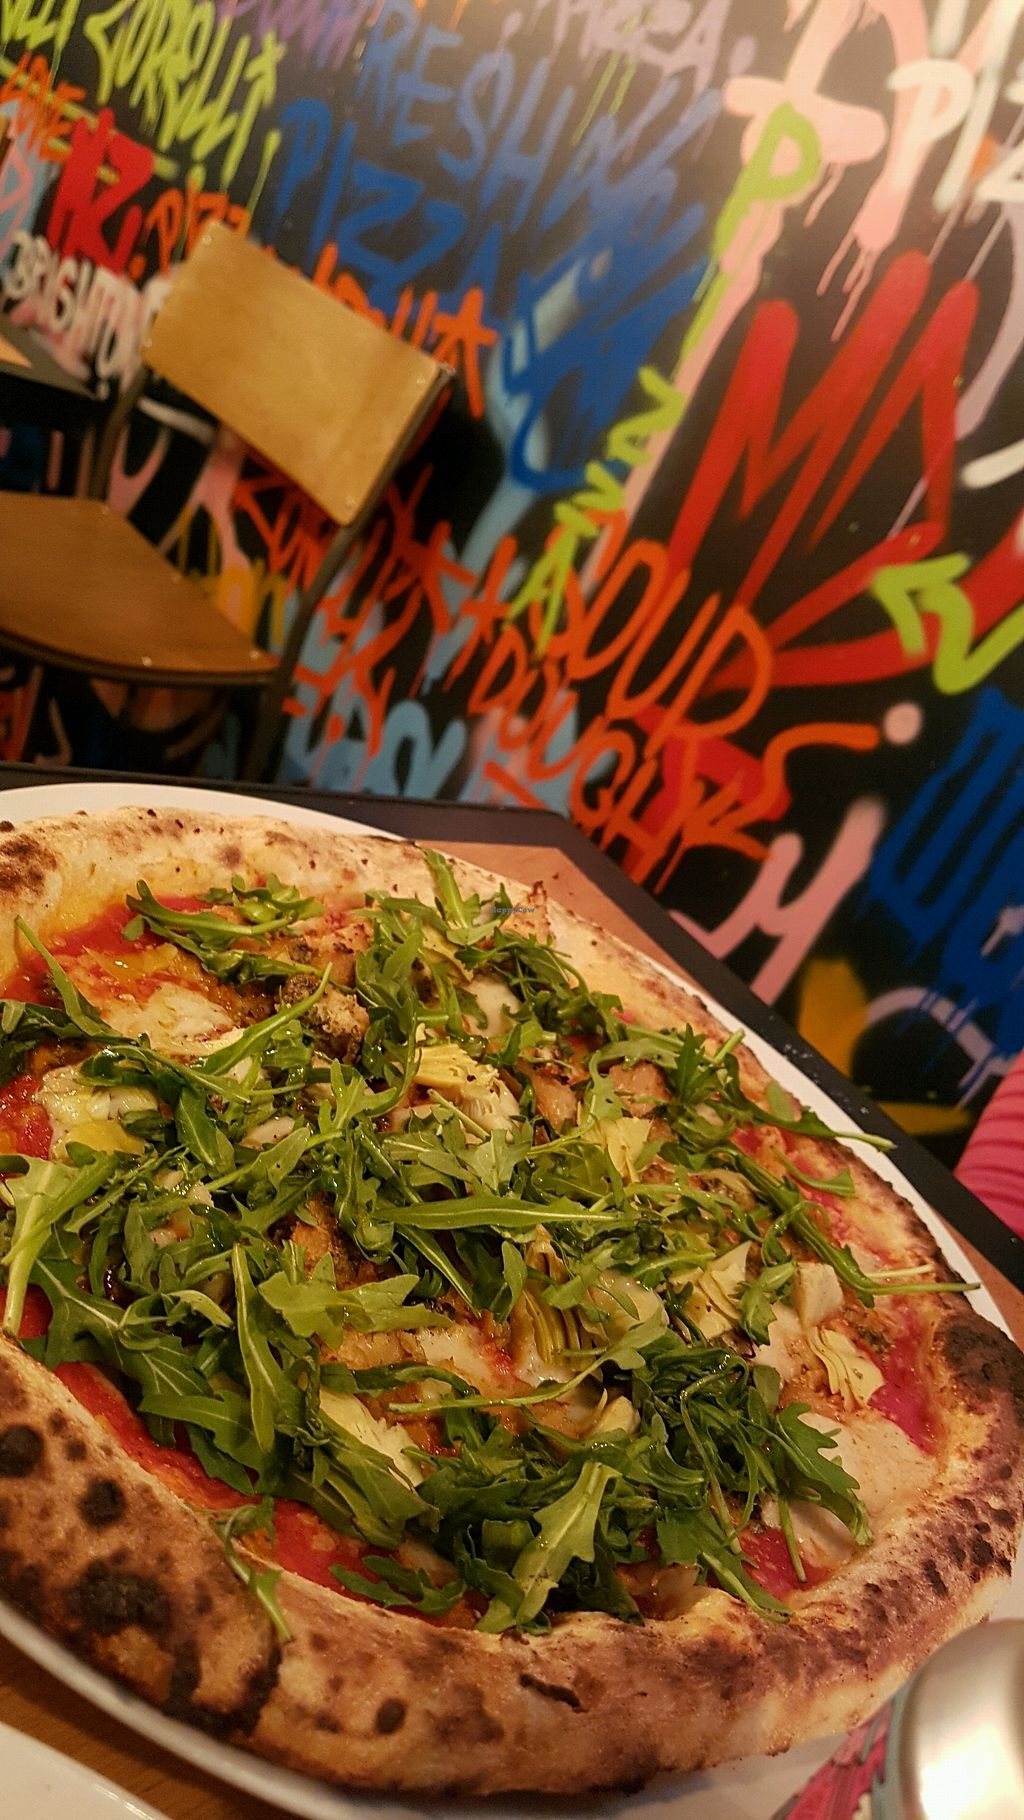 """Photo of Morelli Zorelli  by <a href=""""/members/profile/Stan1891"""">Stan1891</a> <br/>pizza with vegan chicken, vegan pesto and rocket salad <br/> March 16, 2018  - <a href='/contact/abuse/image/56987/371533'>Report</a>"""